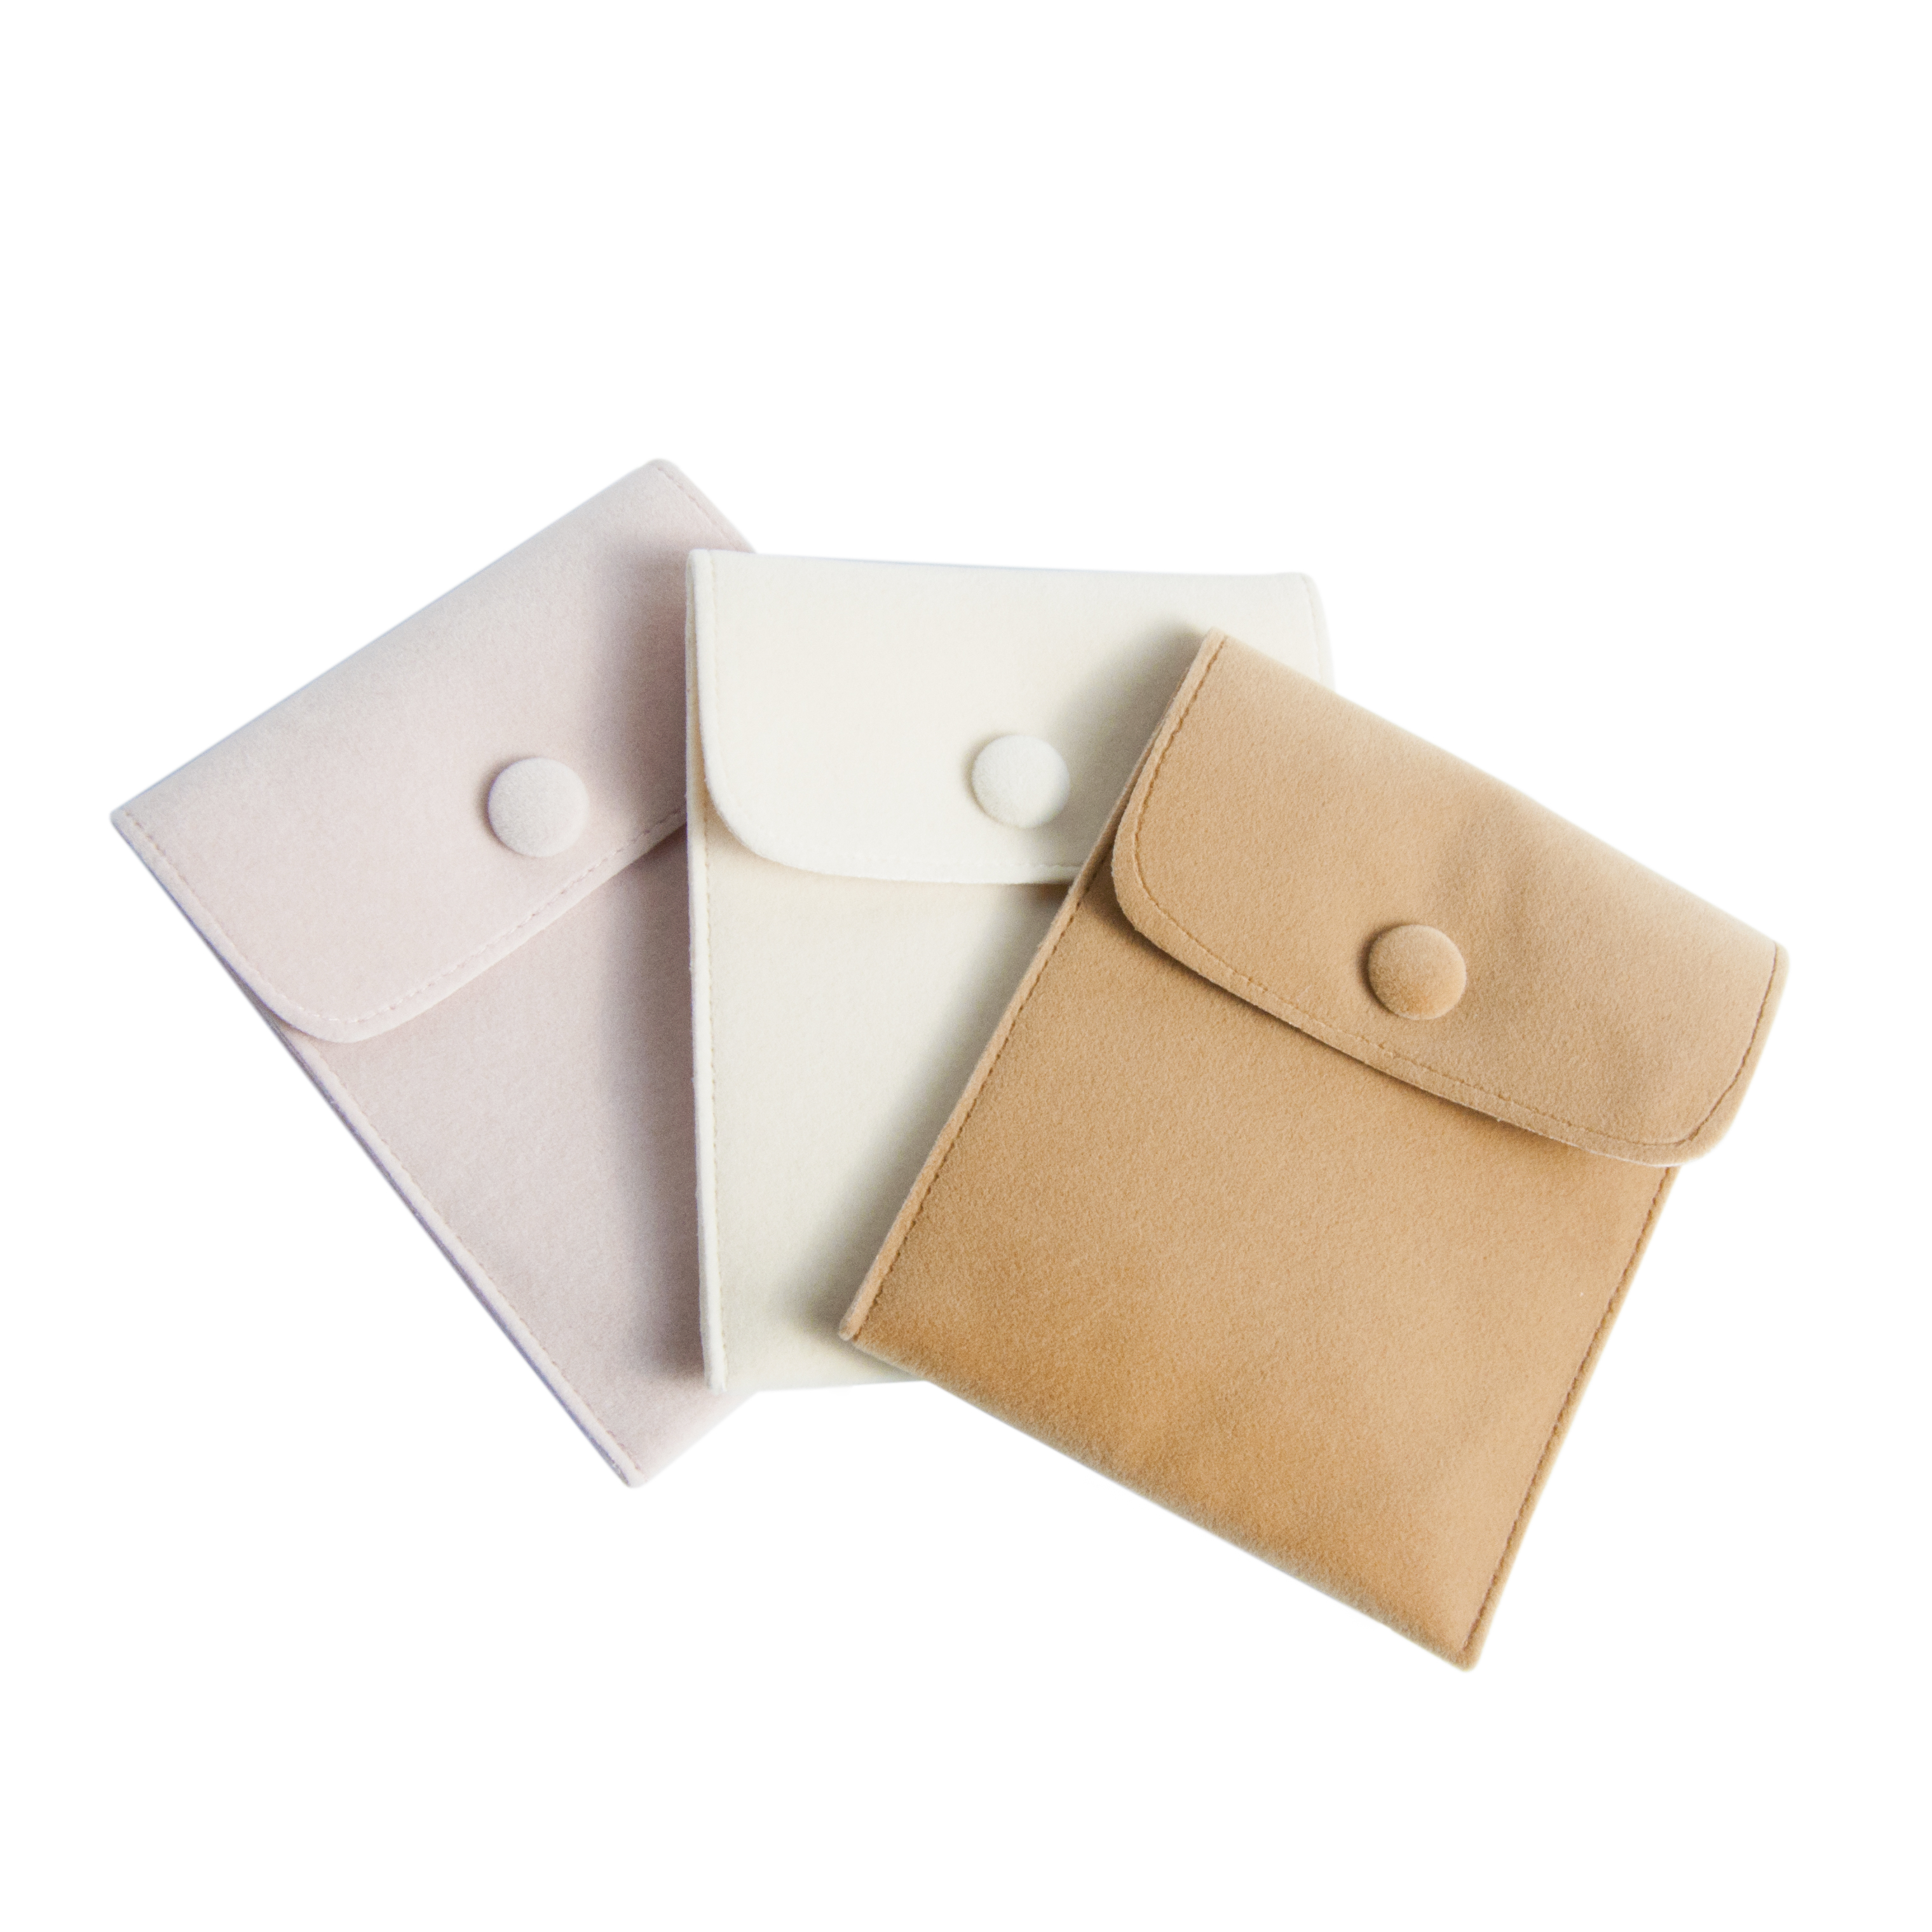 jewelry packaging velvet pouchsnap pouch